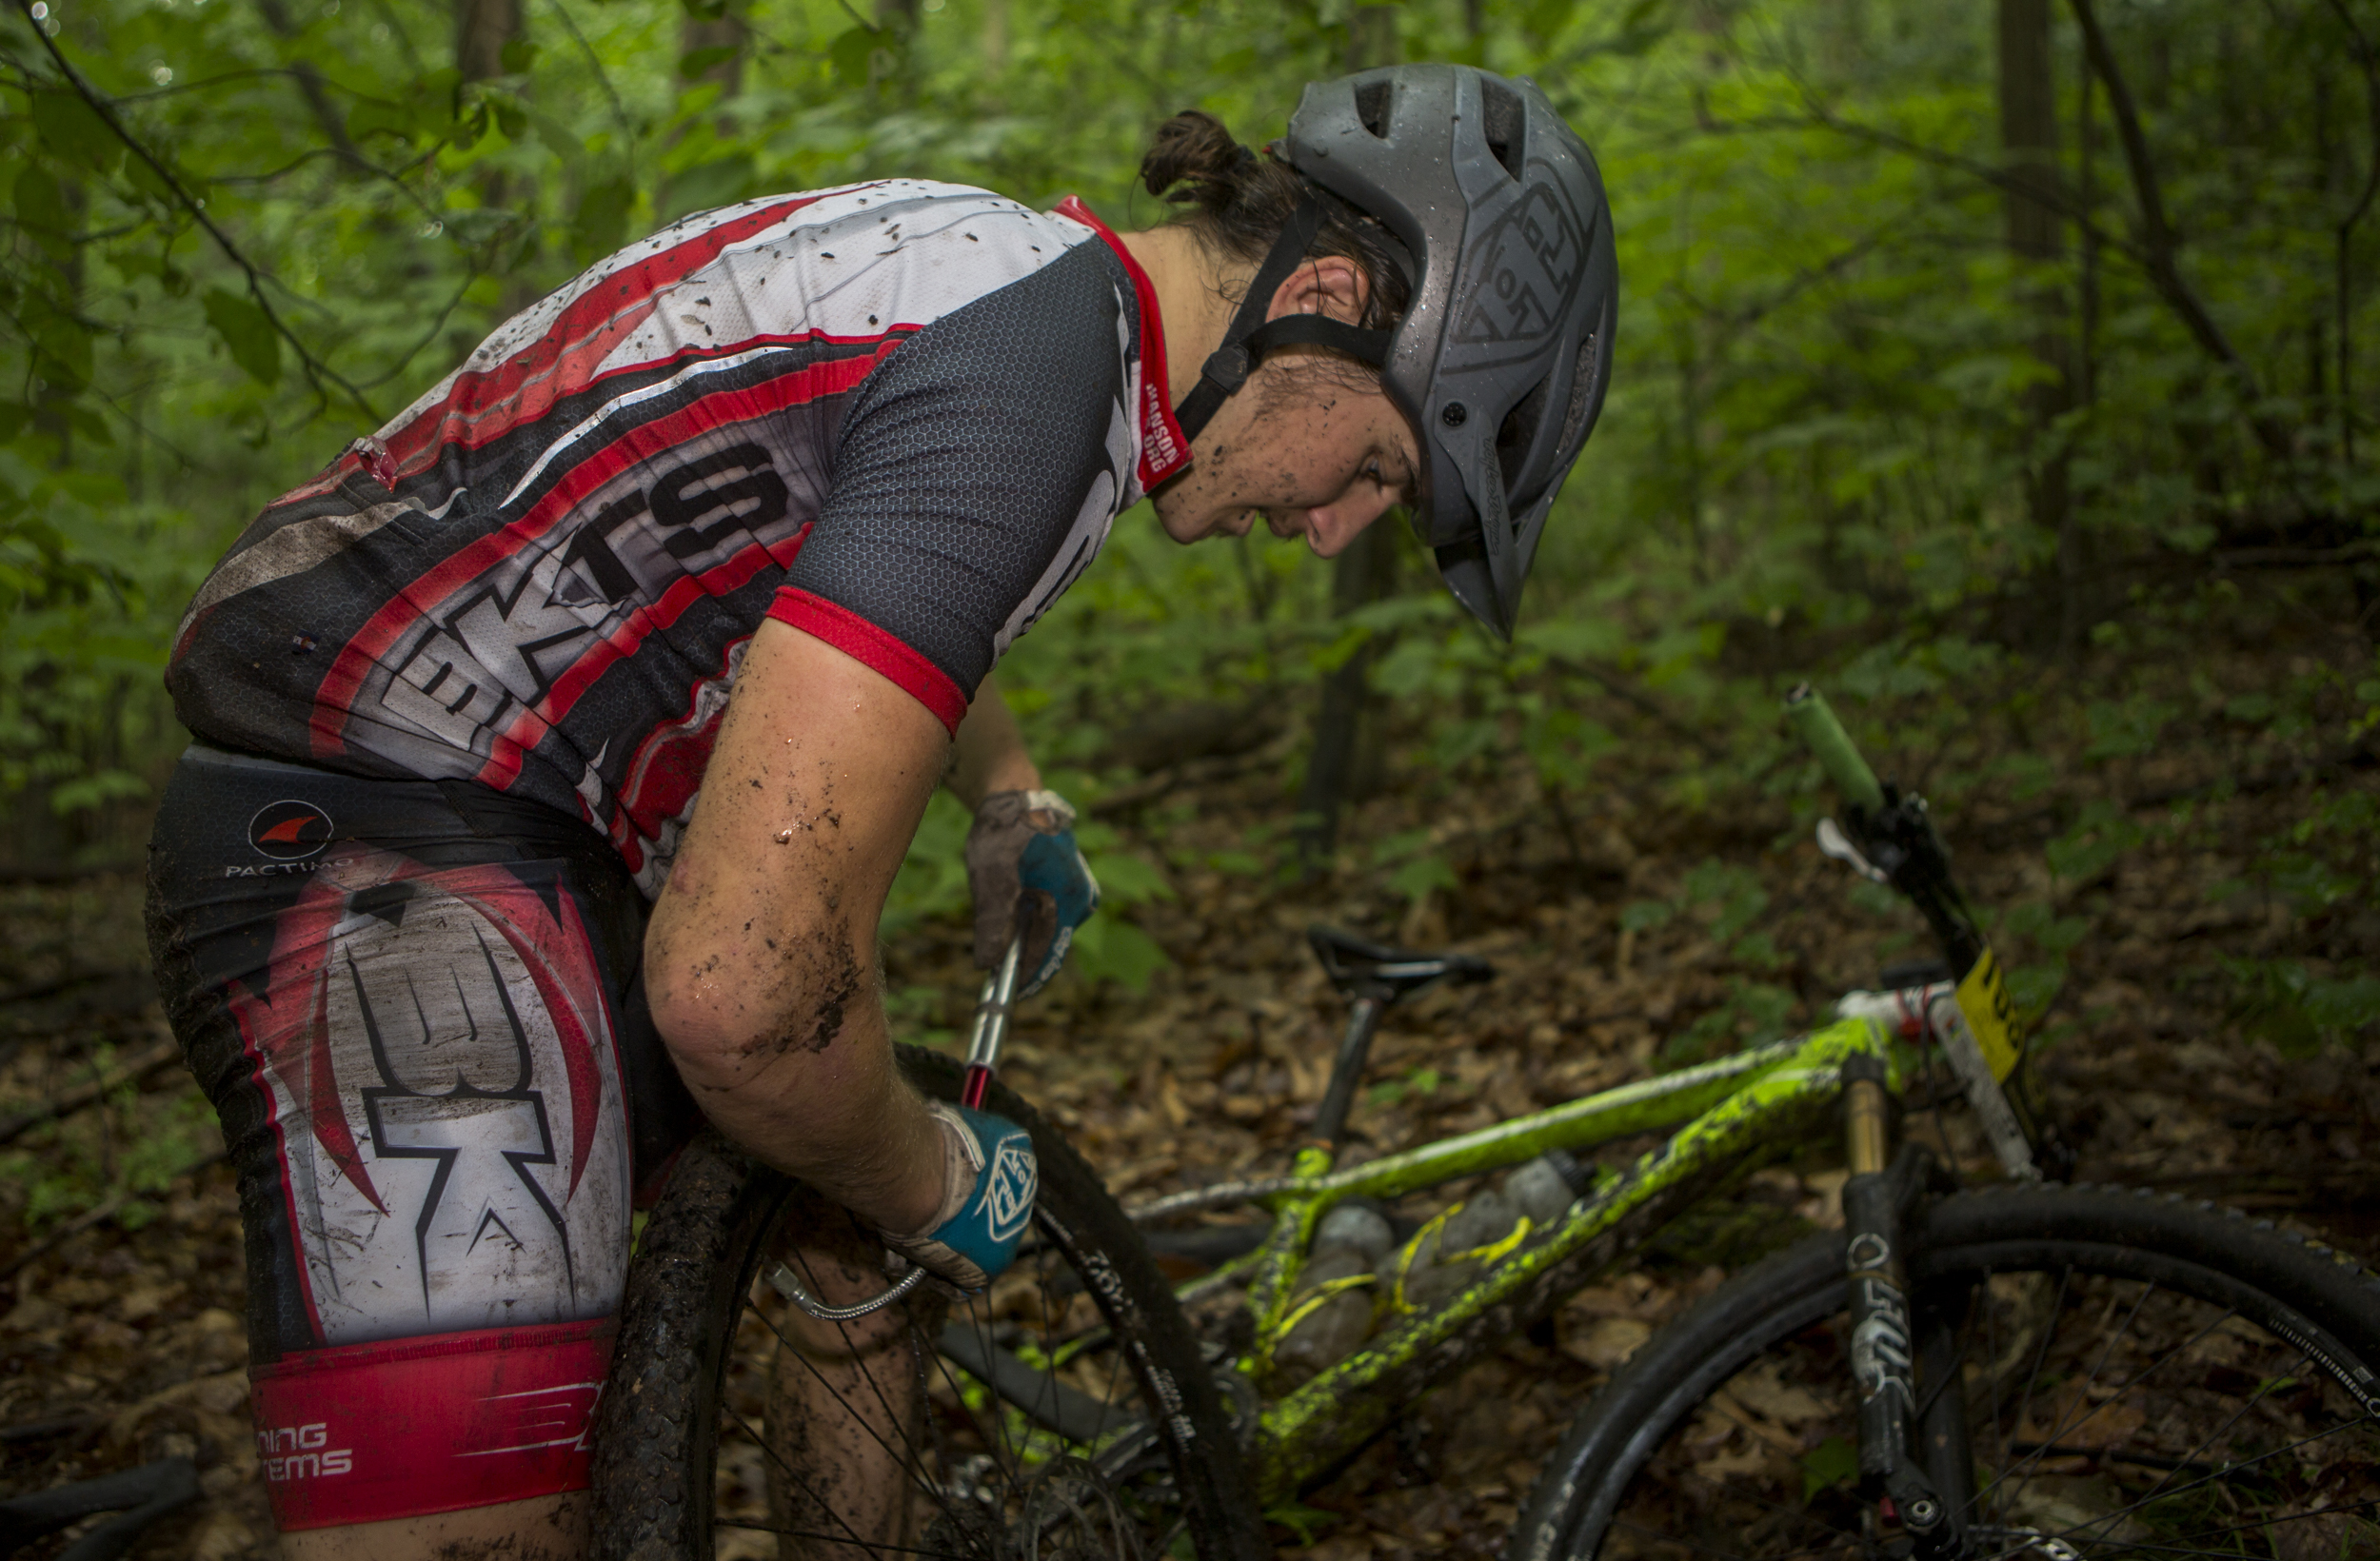 CJ Brish pumps up his rear tire after changing a punctured inner tube on the fourth enduro section of the final stage of the Tran-Sylvania Epic Mountain Bike Ride in Rothrock State Forest on Friday, June 3, 2016.